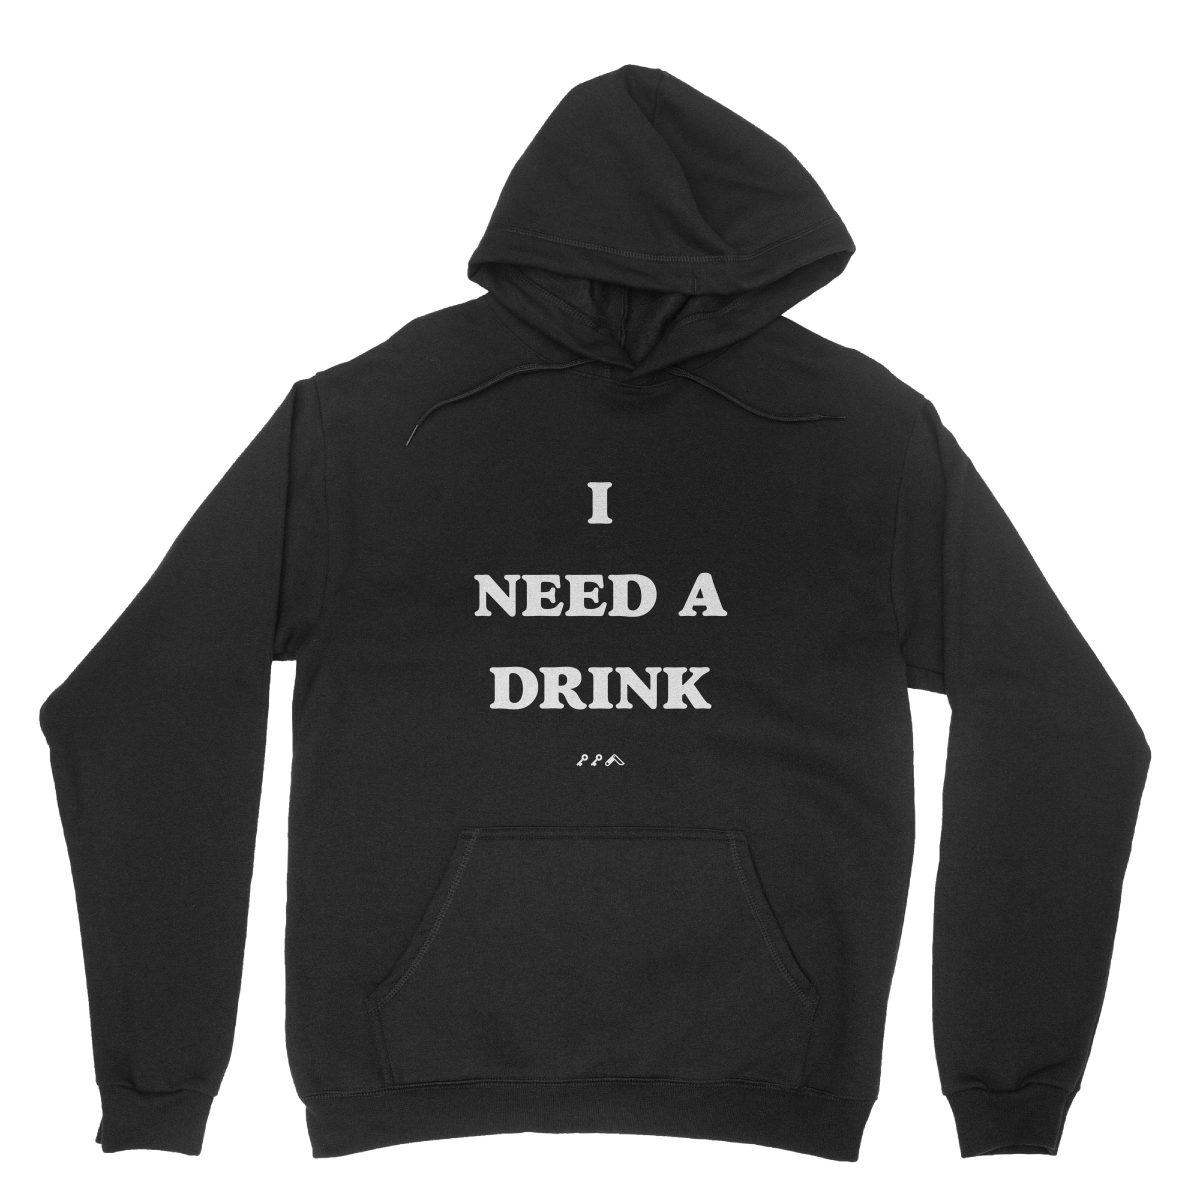 I NEED A DRINK sunday funday drinking hoodie in black